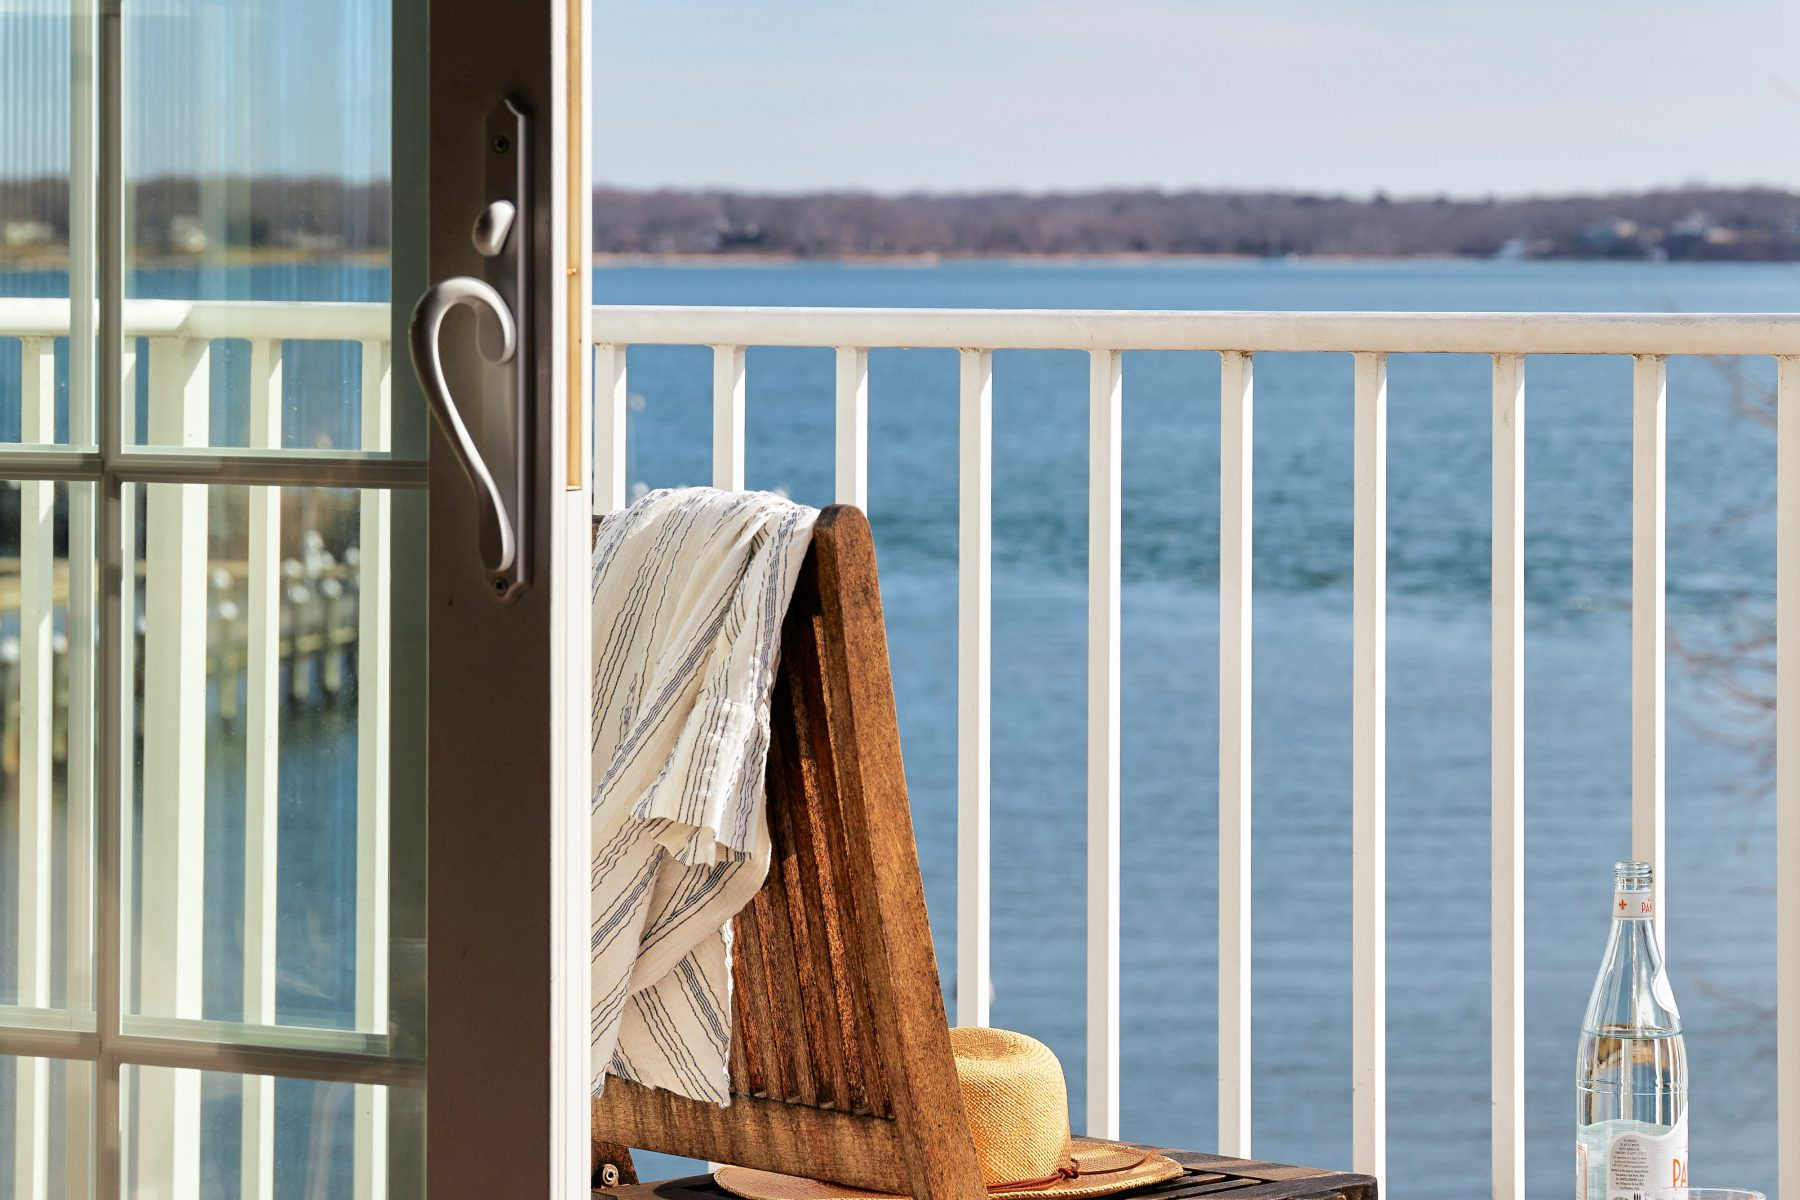 Tan hat sitting in chair on balcony overlooking Peconic Bay